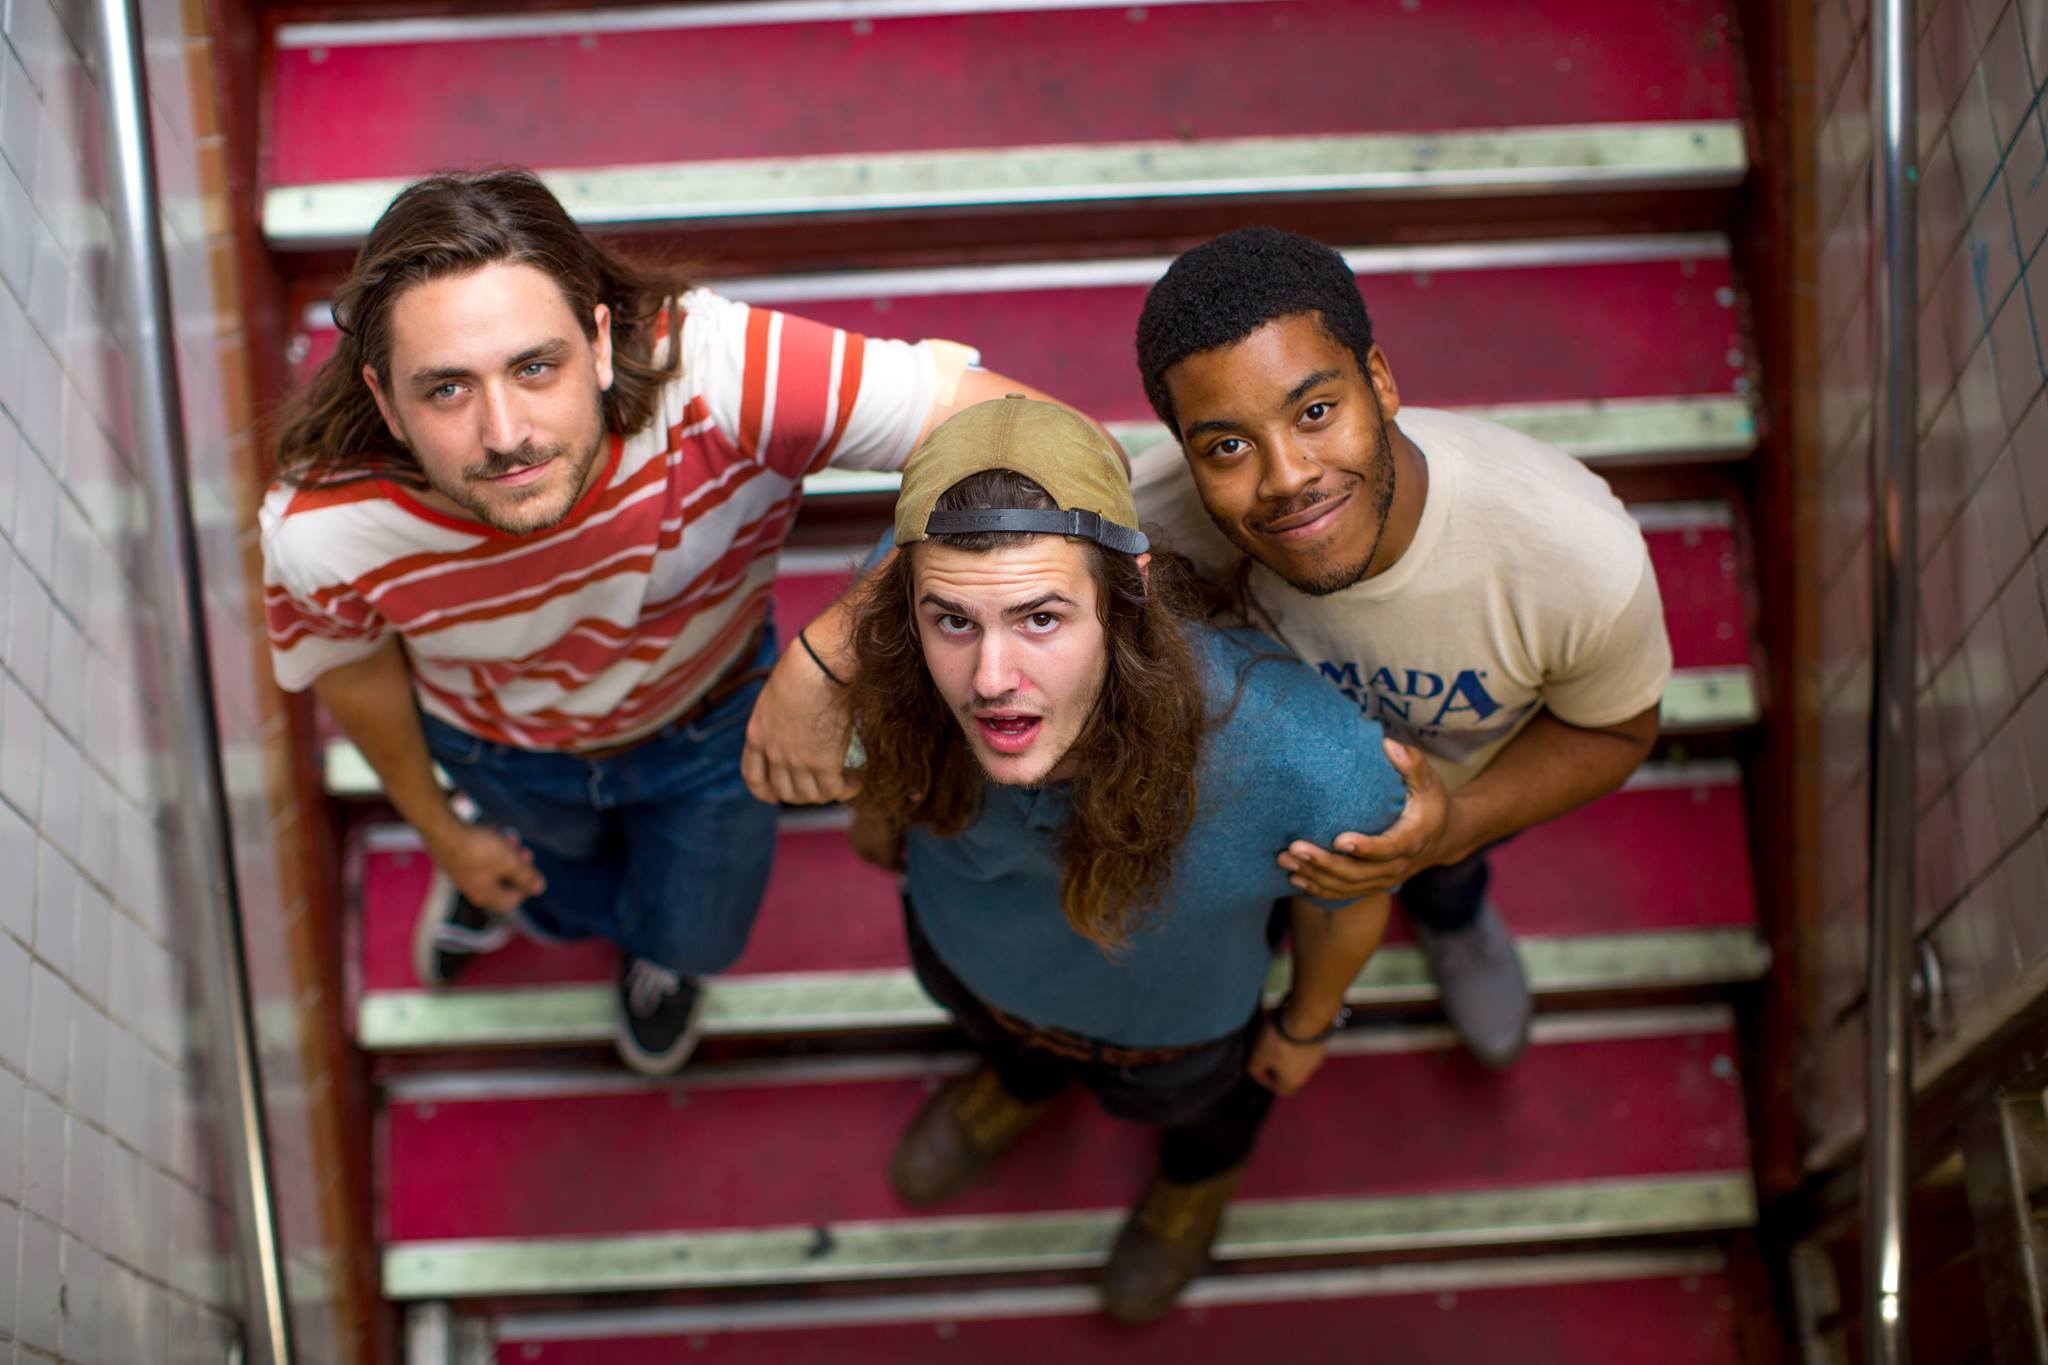 The Lonely Biscuits, who will play at Art On The Rocks in July.